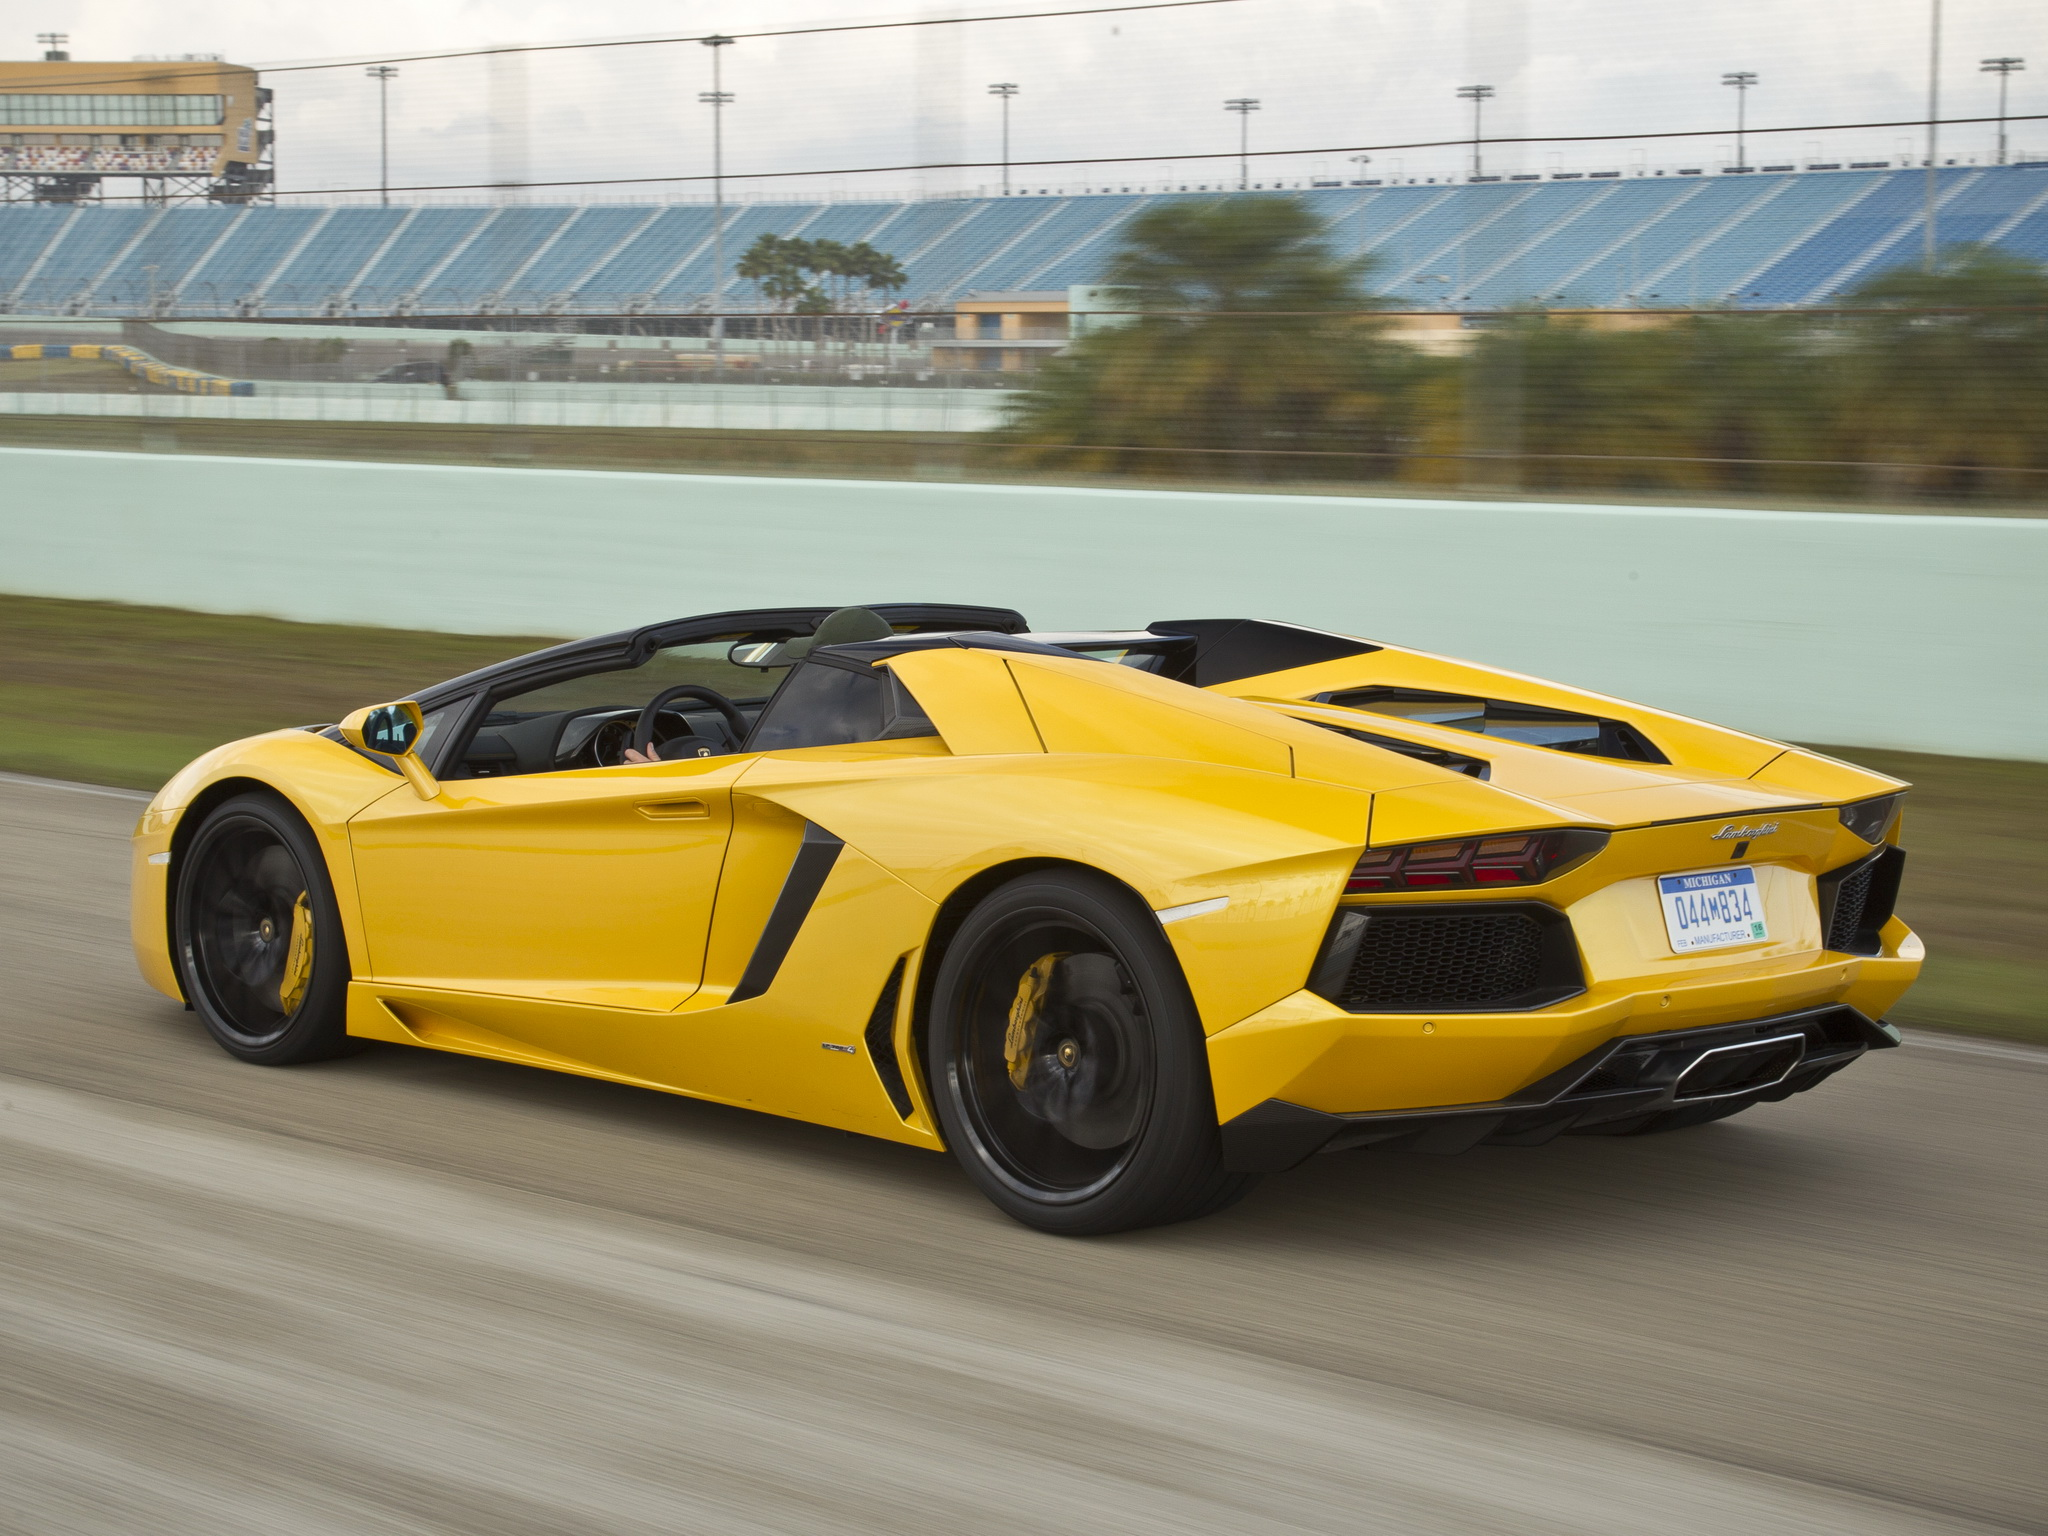 2014 Lamborghini Aventador LP700 4 Roadster yellow supercar wallpaper 2048x1536